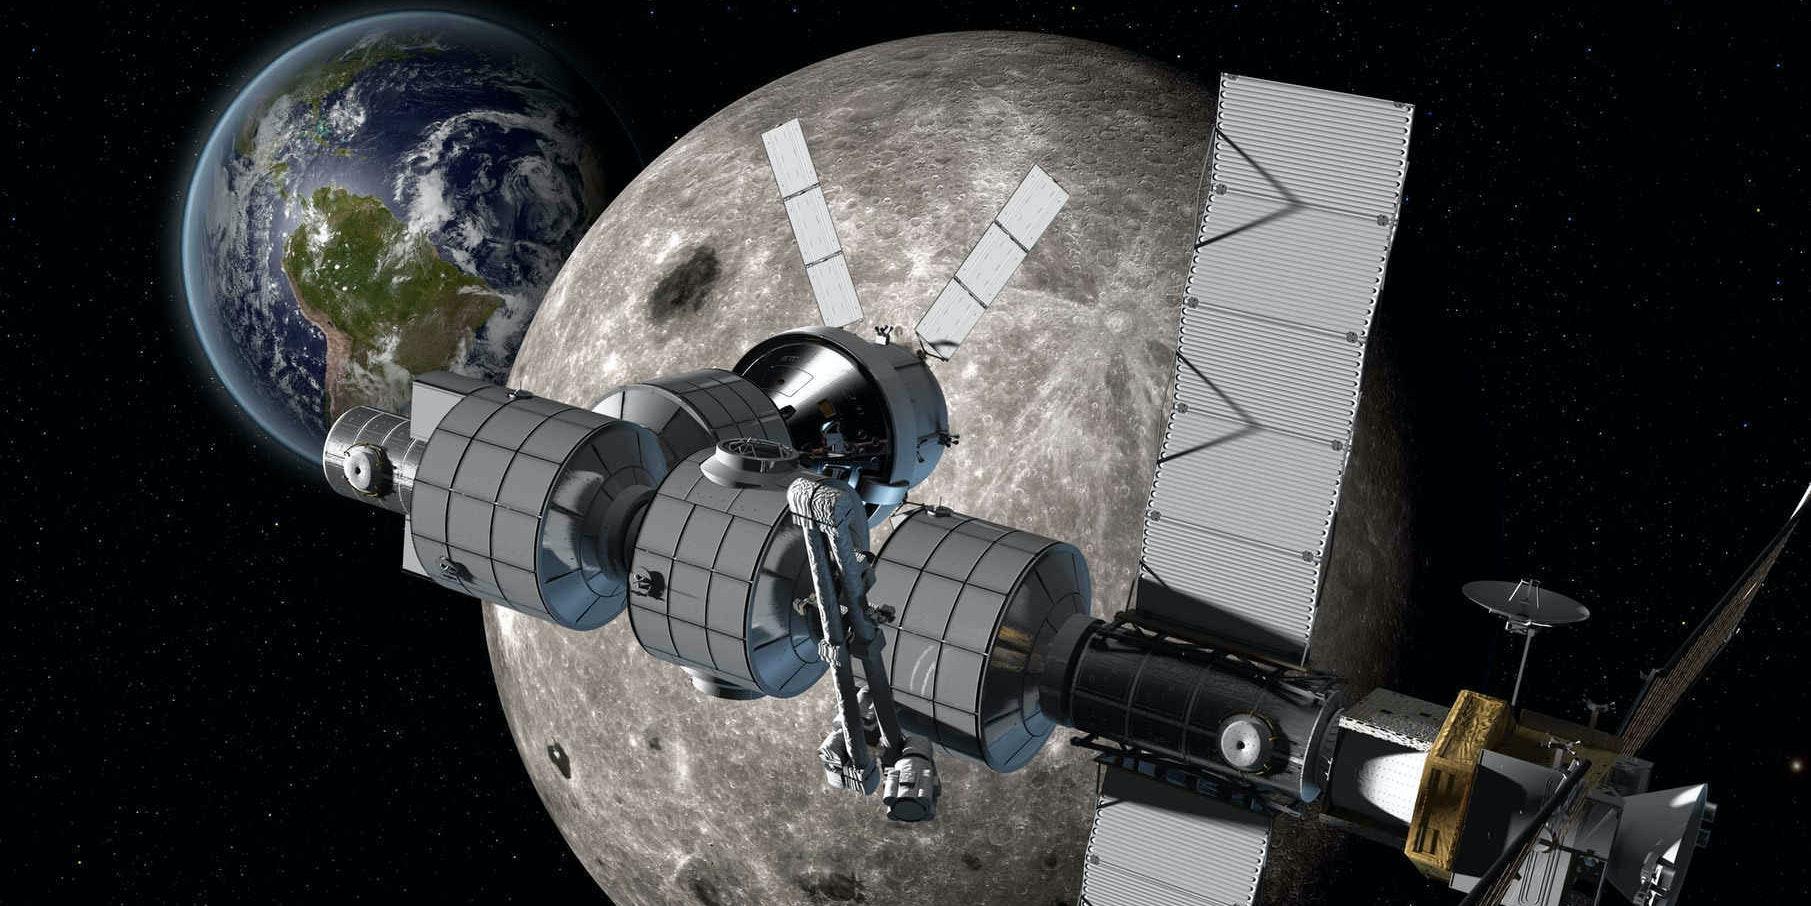 Boeing's Crewed Lunar Space Station Will Be a Stepping Stone for Mars Missions | Inverse